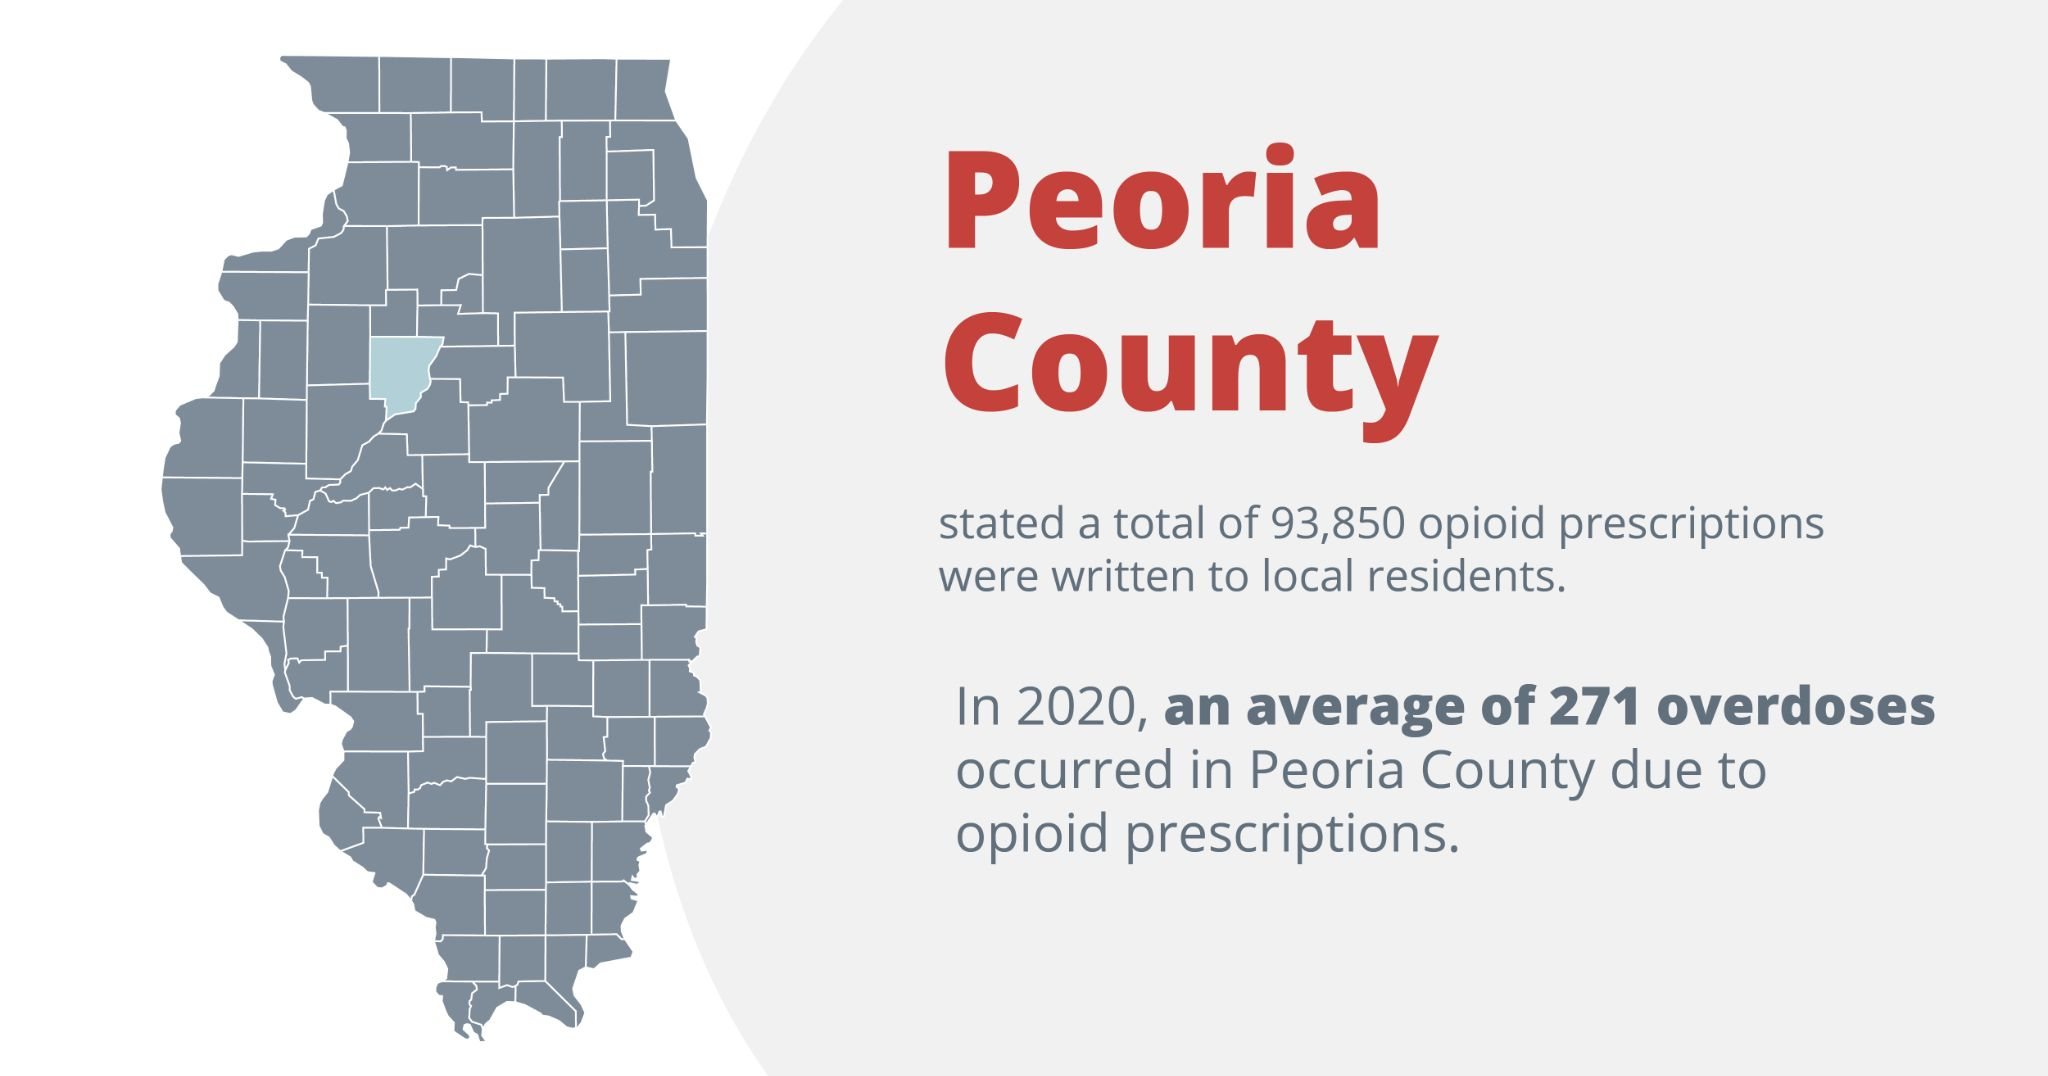 Peoria county stated a total of 93,850 opioid prescriptions were written to local residents. In 2020, an average of 271 overdoses occurred in peoria county due to opioid prescriptions